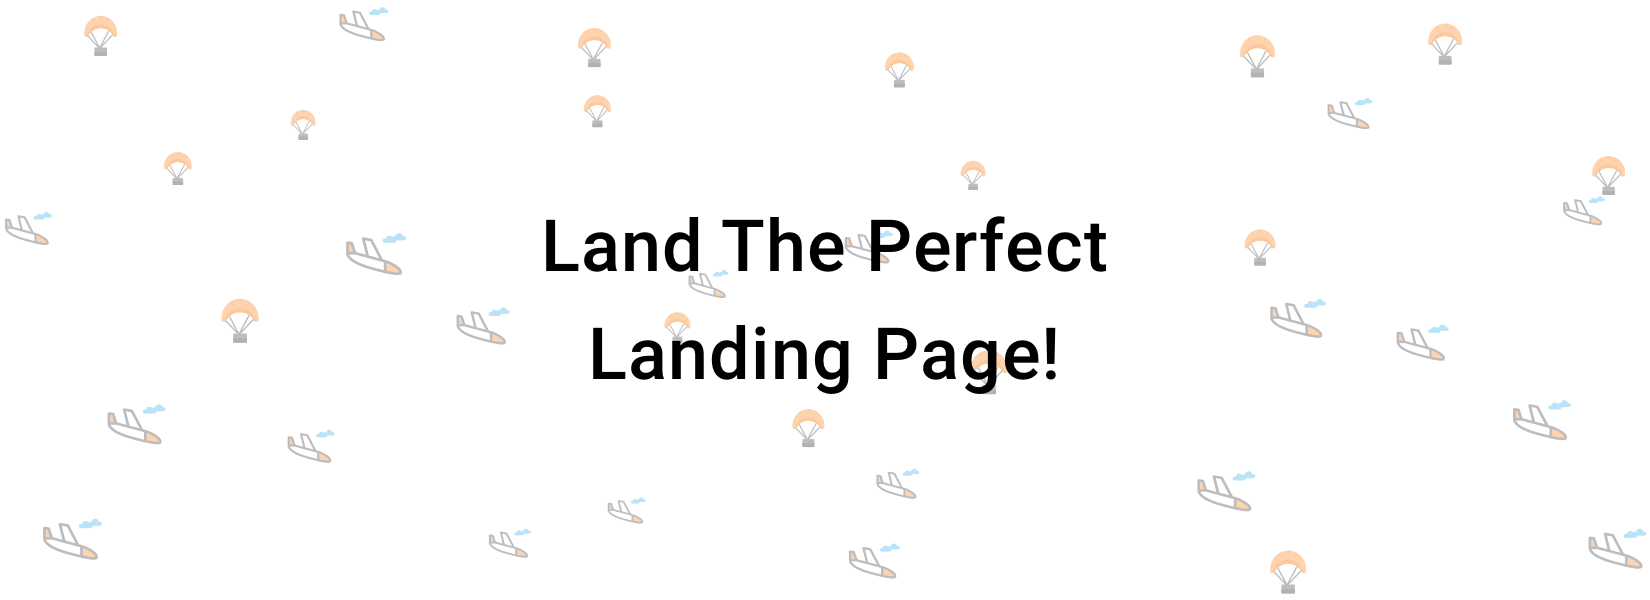 Land the perfect landing page.